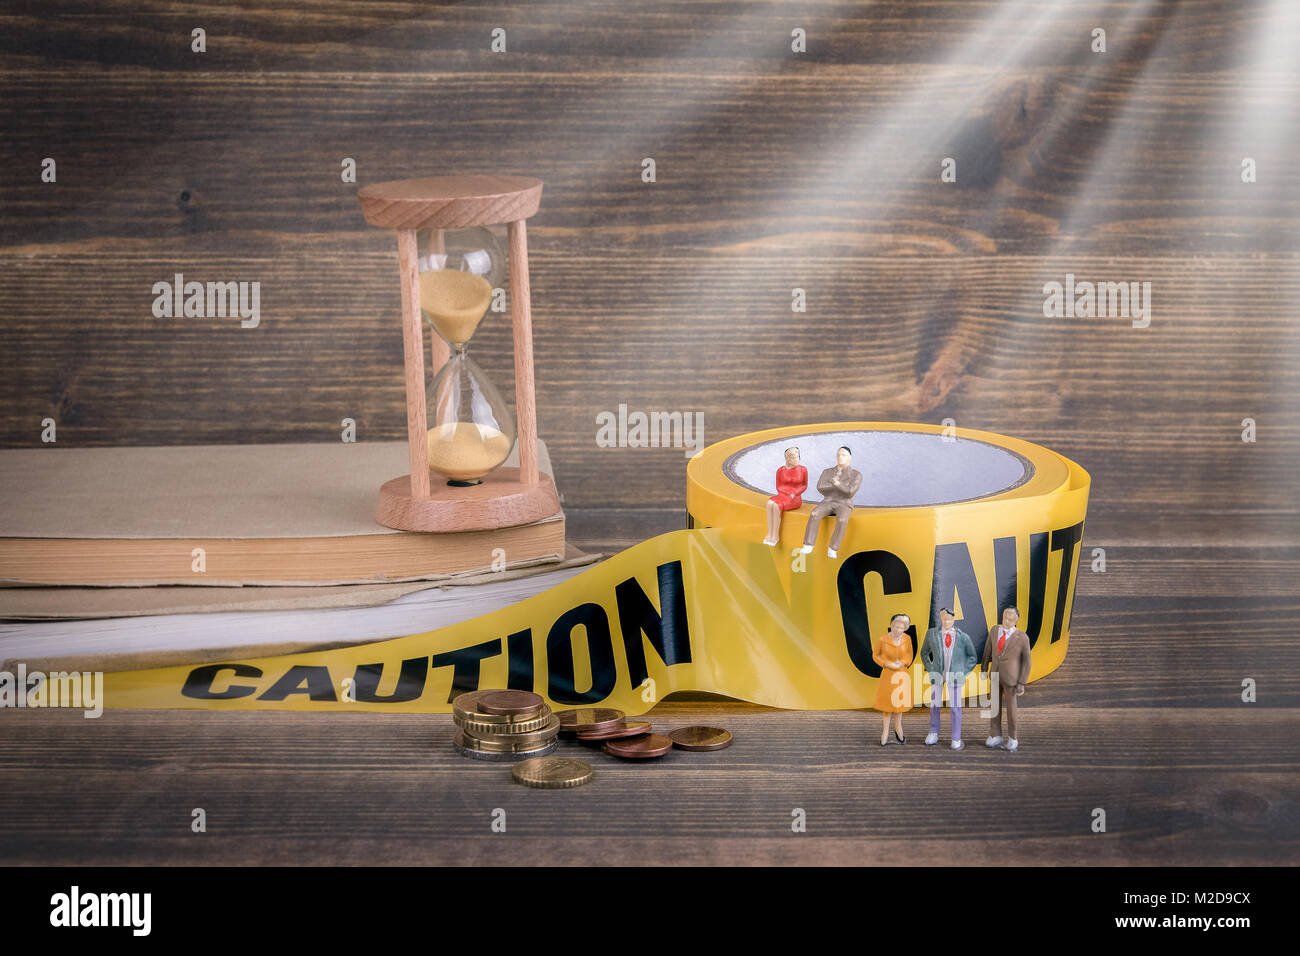 education and reform. career opportunities and profits. yellow caution tape - Stock Image